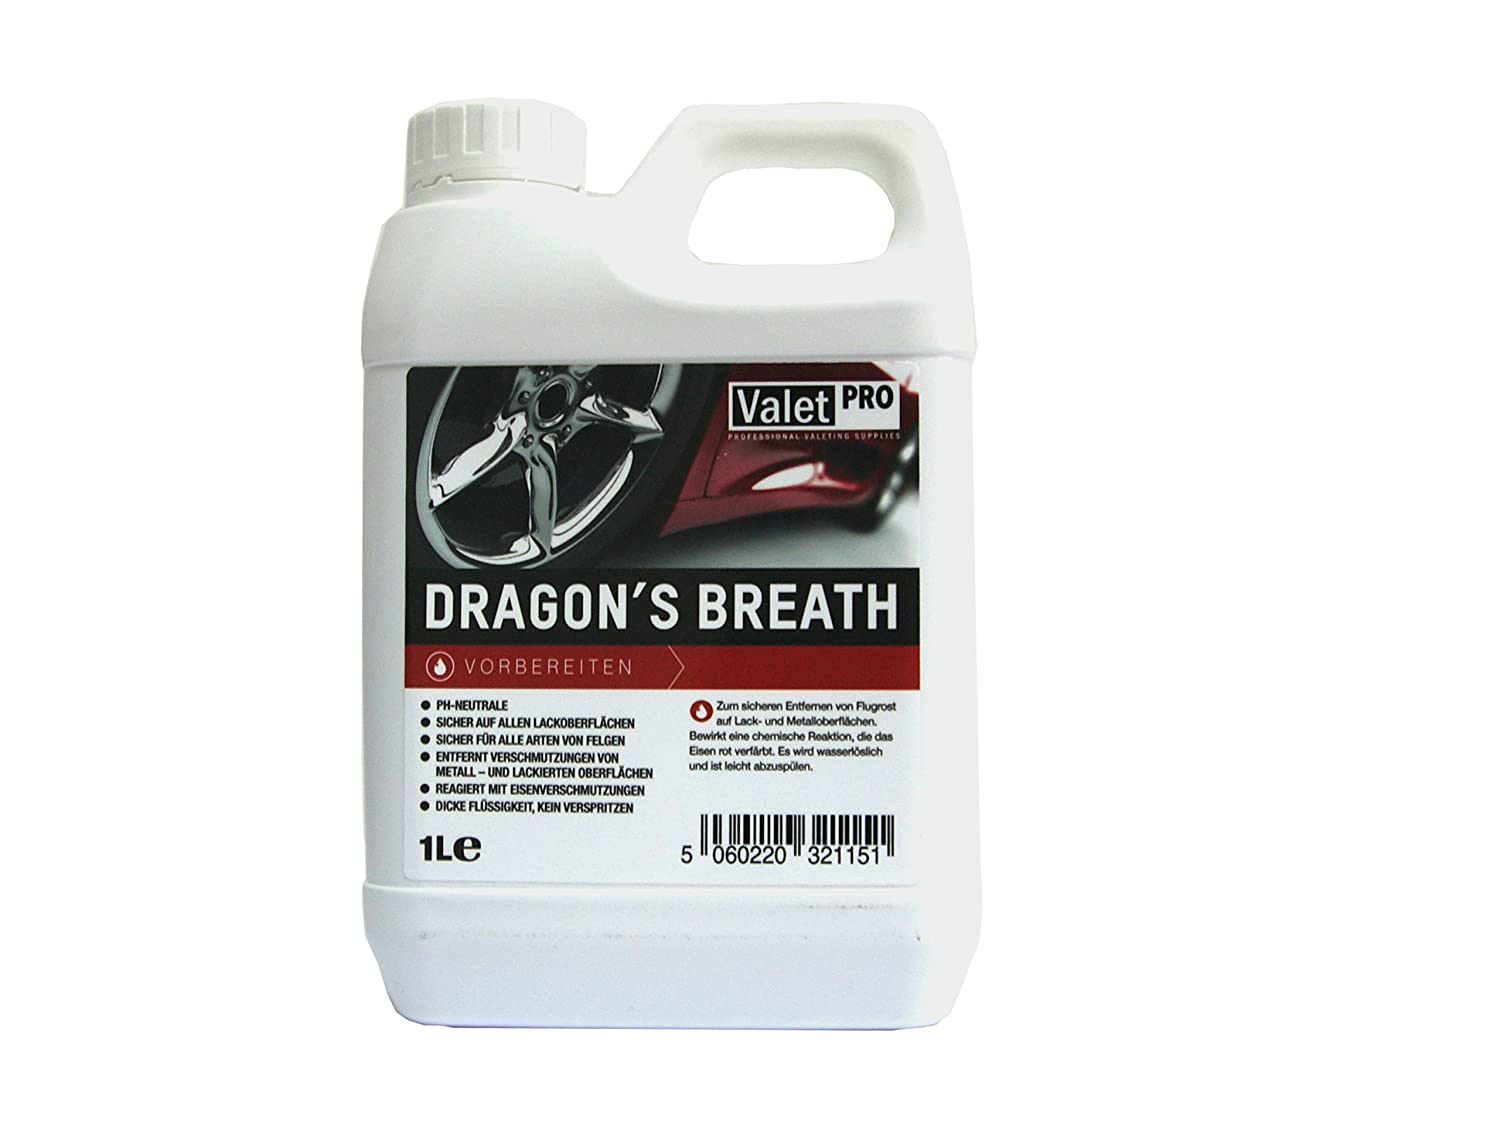 1 x ValetPro Dragon's Breath wheel cleaner 1 L / safe for rim surfaces / removes brake dust and other dirt / care / rim care / cleaning / canister / 500 ml / cleaning power / wheel cleaner / detailing / ValetPro / Made in England / detailing / rims / alloy